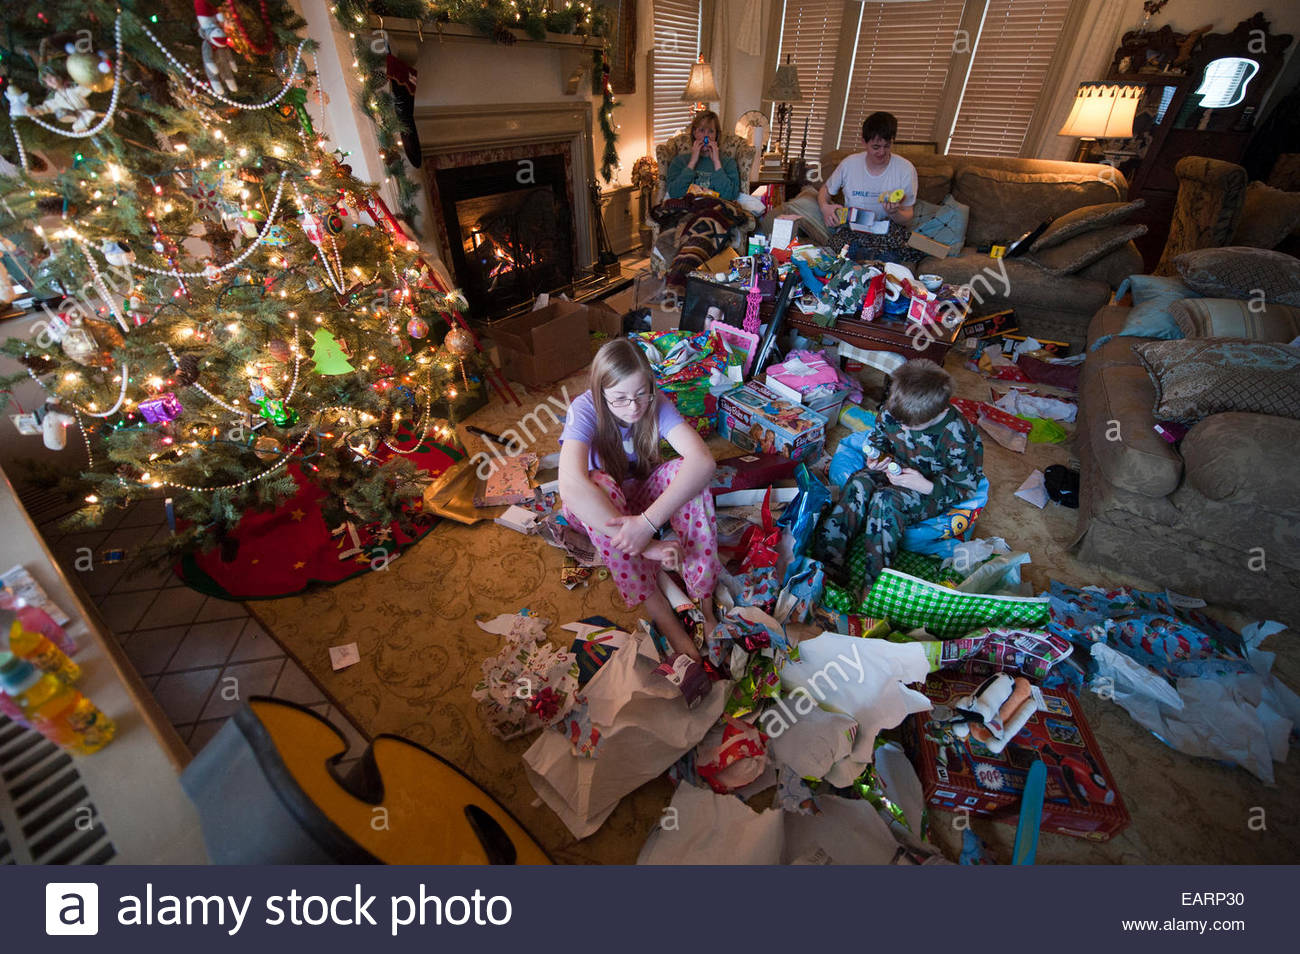 A family opens gifts together on Christmas morning. - Stock Image